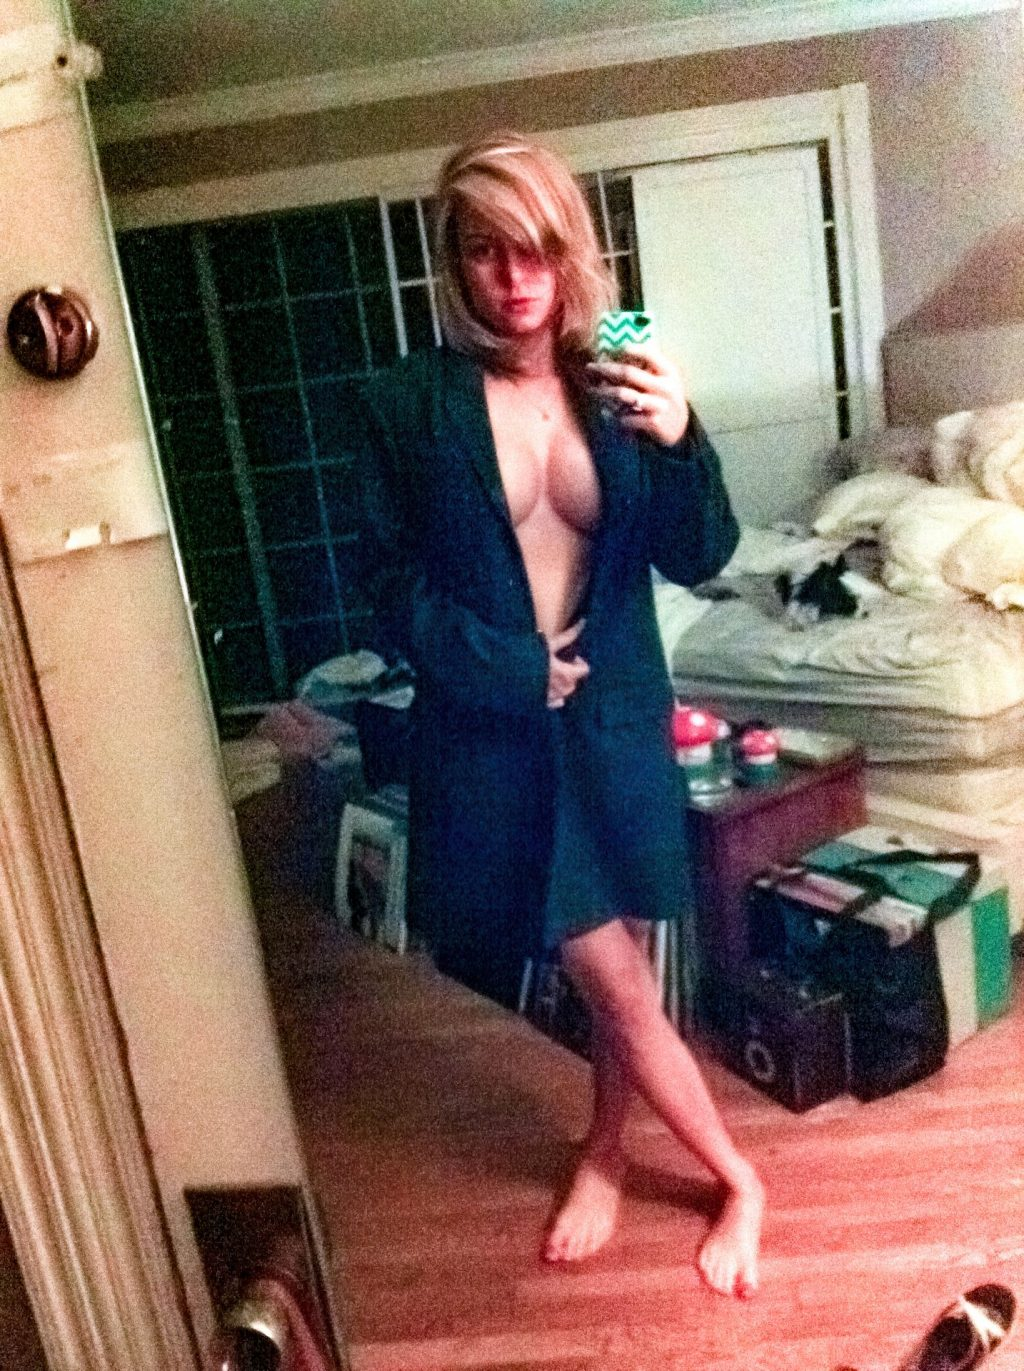 Brie Larson Nude Leaked The Fappening (3 Photos)